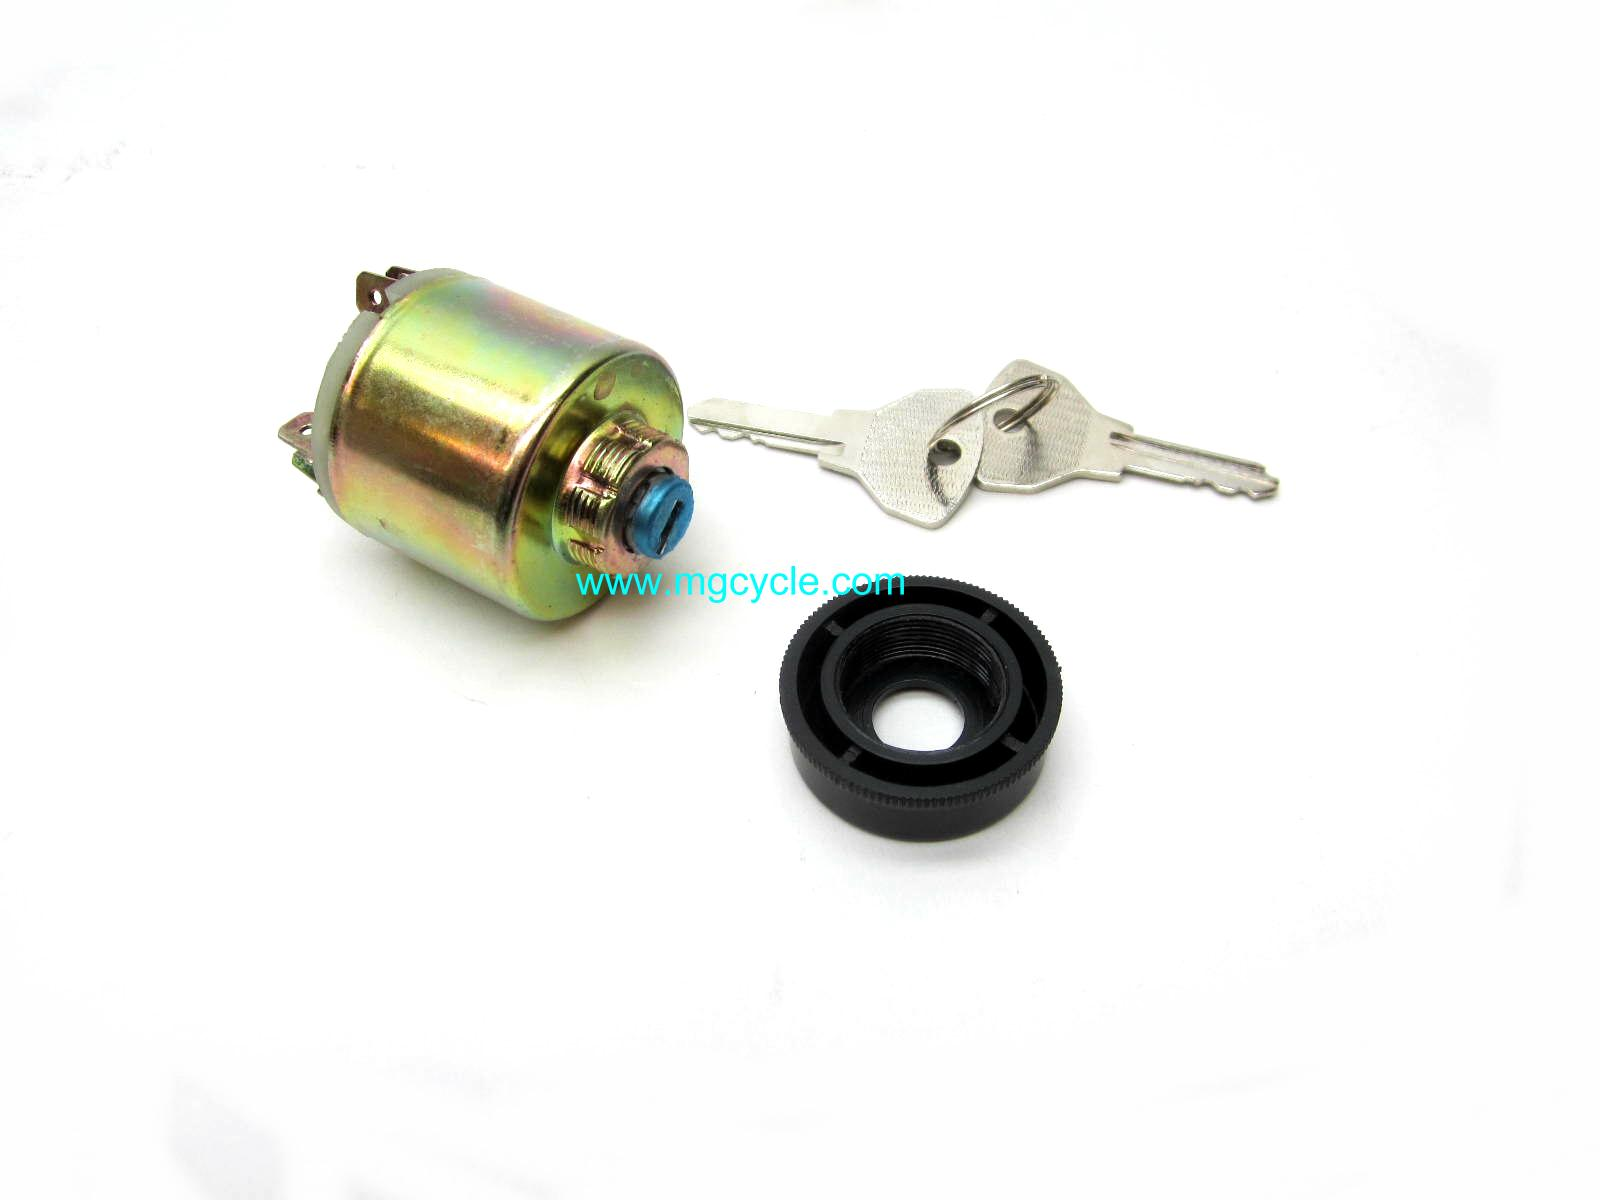 Ignition switch with 2 keys, V700 Ambassador Eldorado 850GT